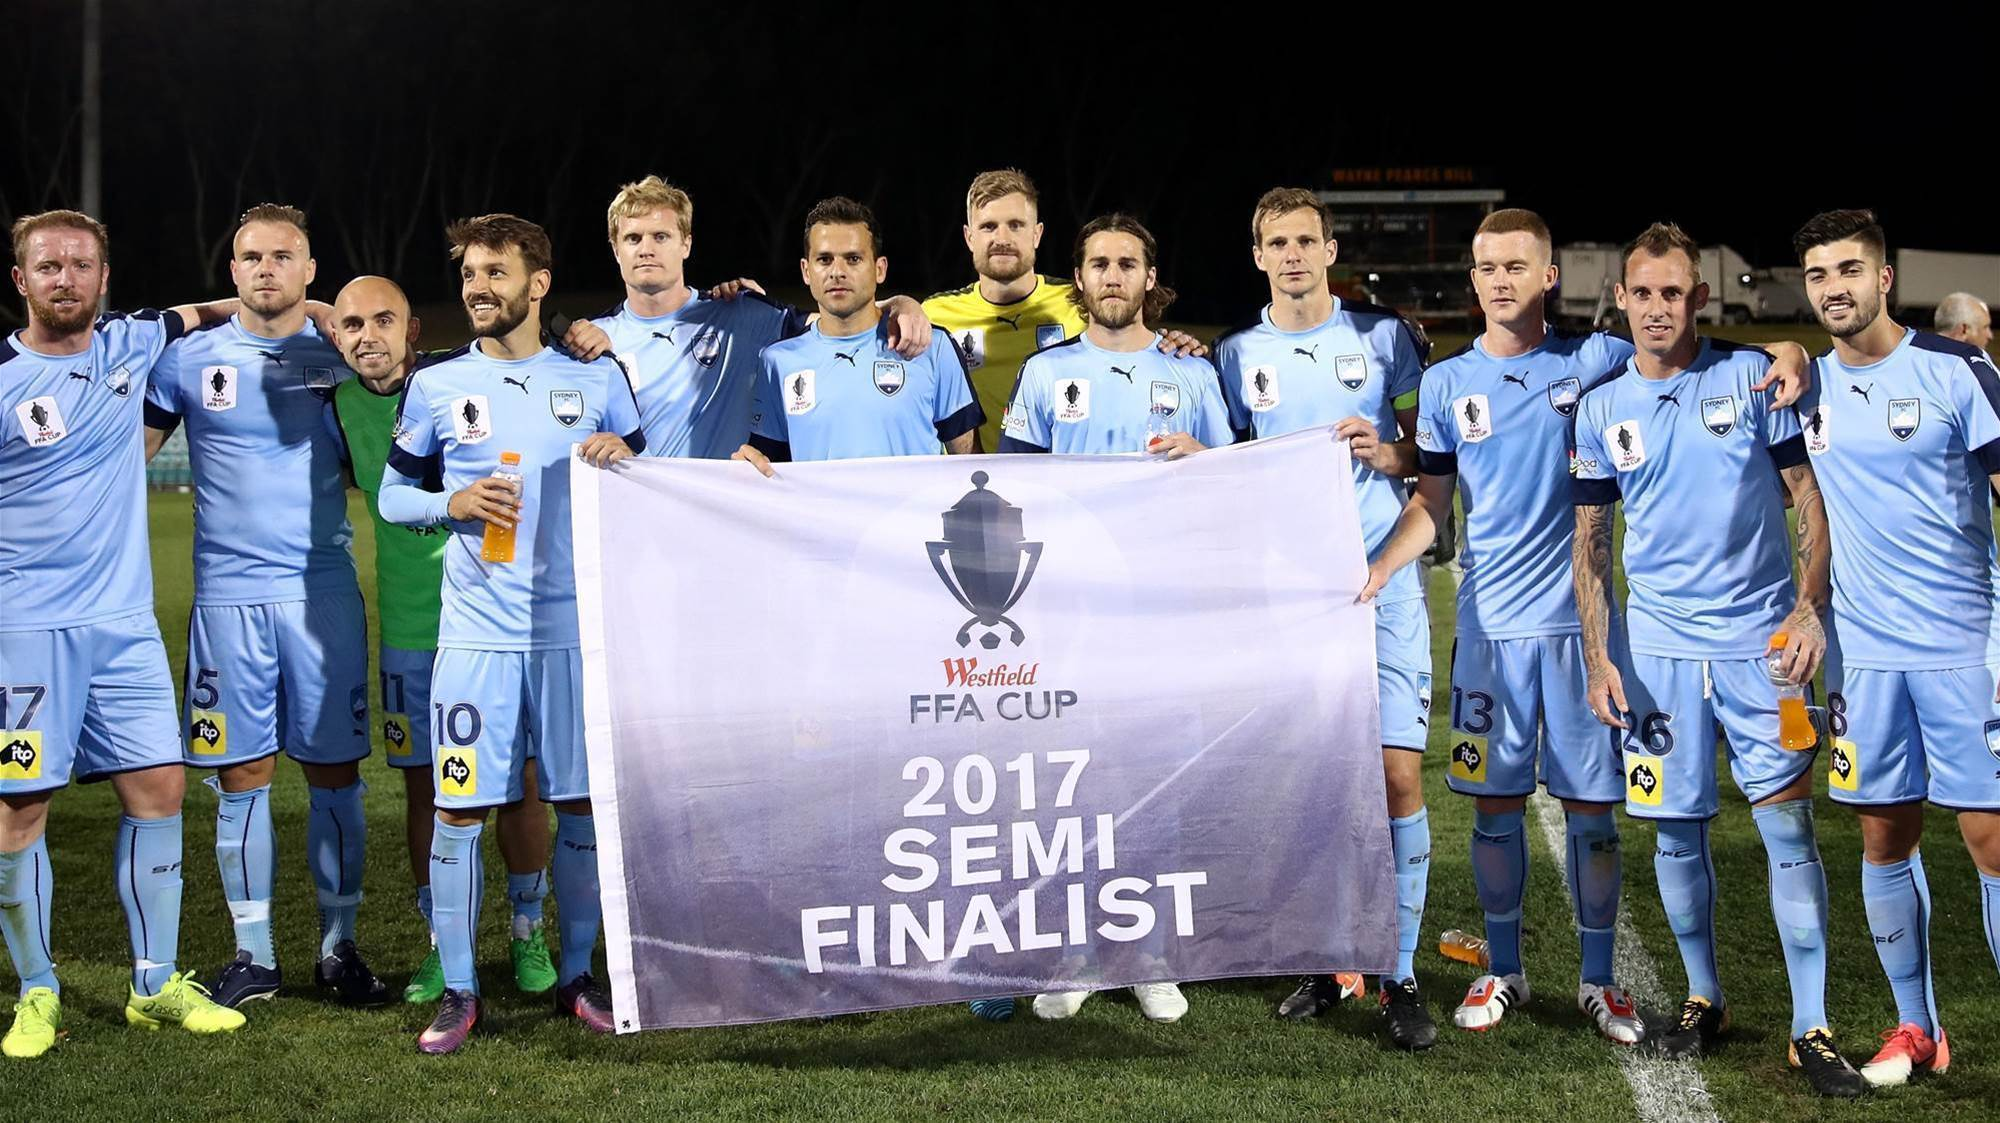 Brillante: FFA Cup is first on the list